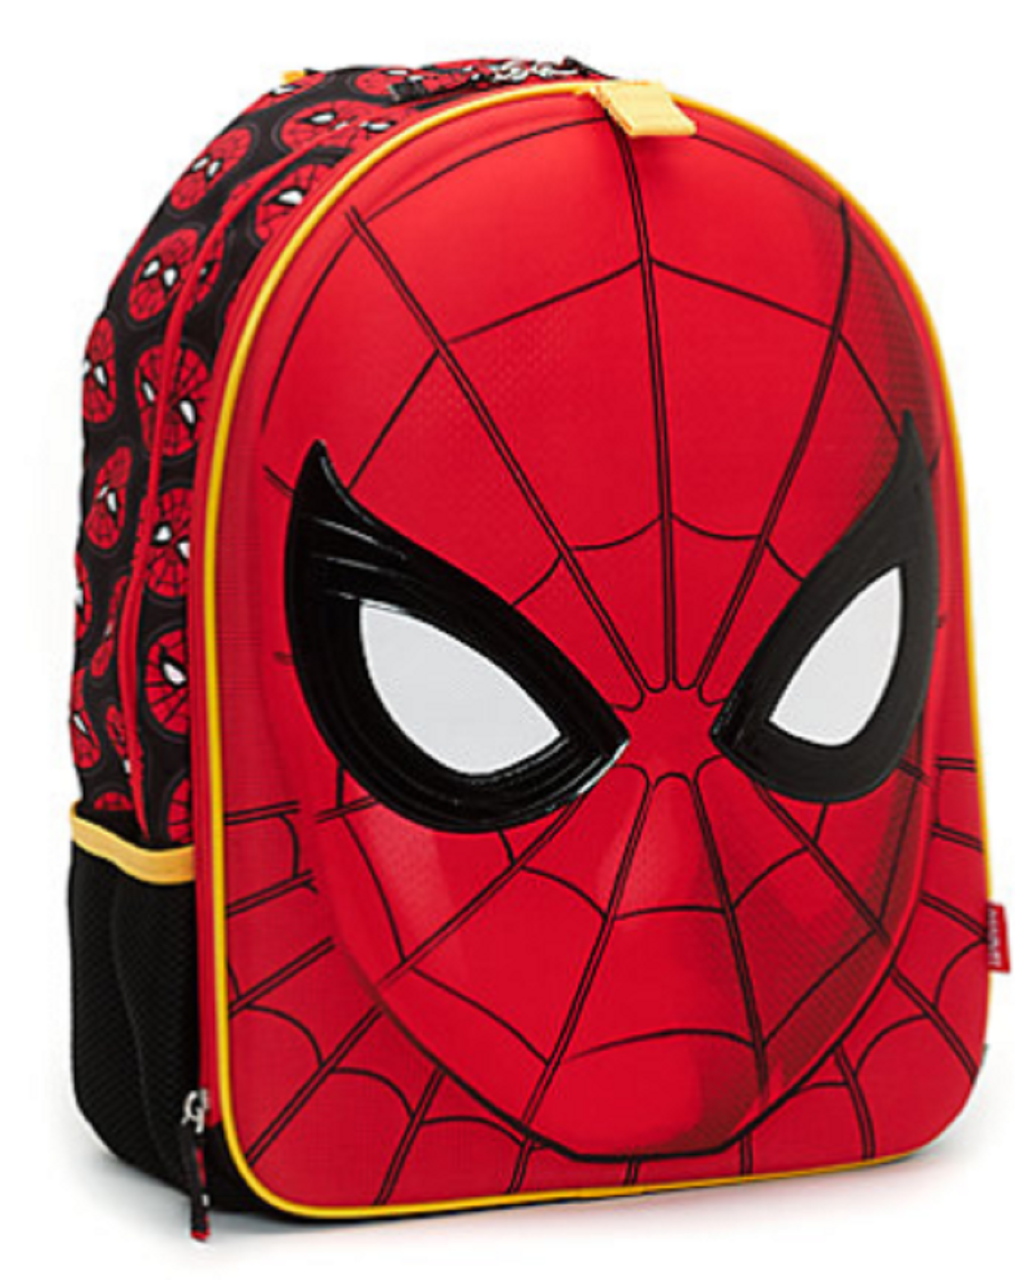 Backpack - Spiderman - Large 16 Inch - Red - 3D Face